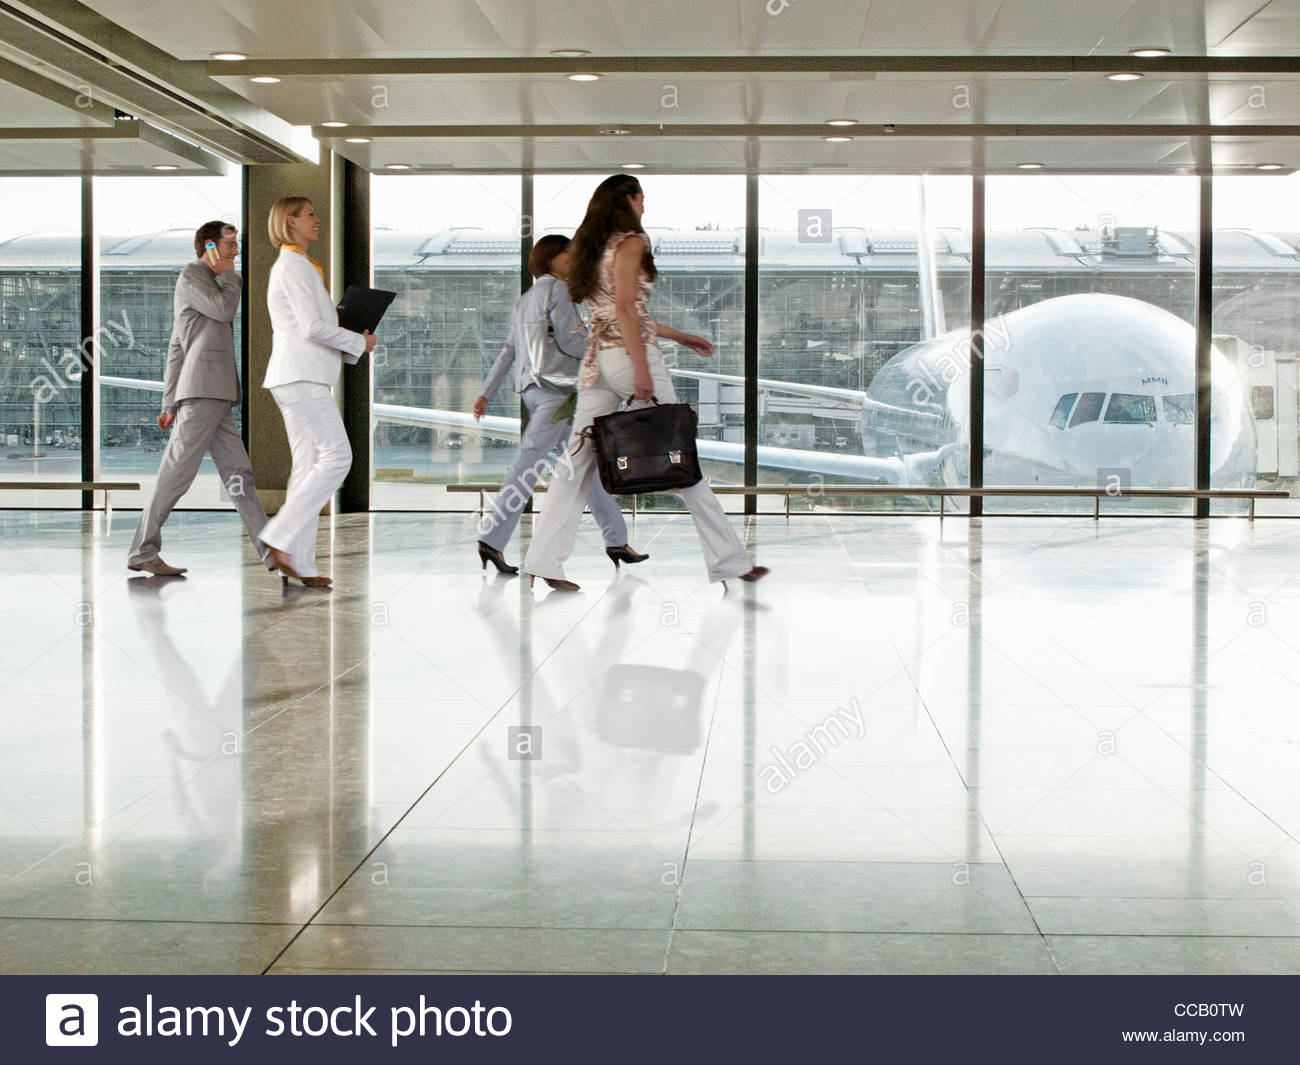 Business people walking in airport terminal - Stock Image